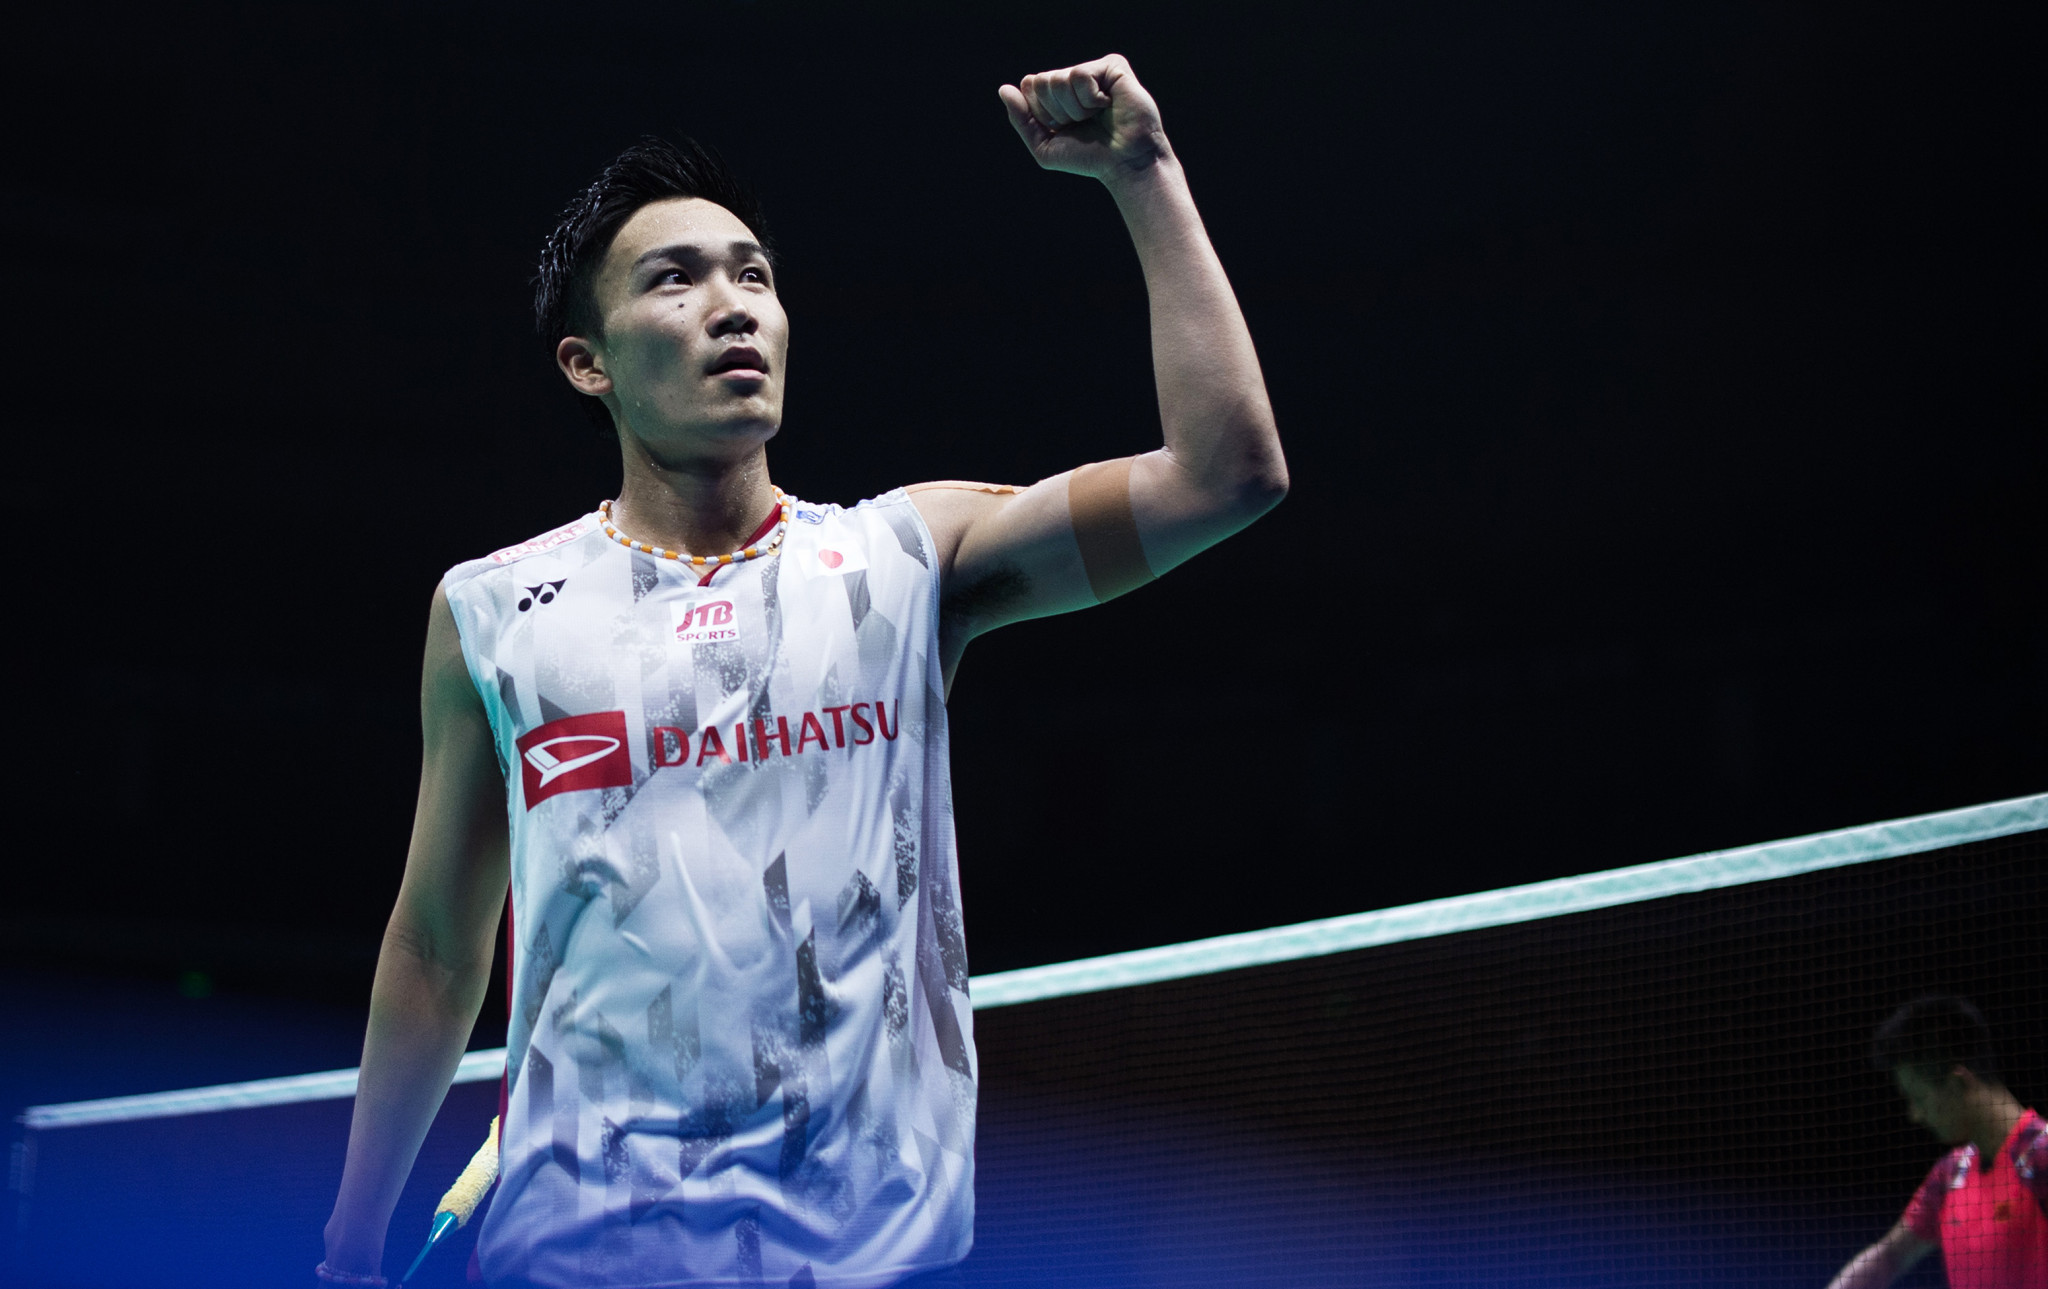 Japan's Kento Momota sealed victory at the Badminton Asia Championships after beating last year's winner Chen Long in today's final in Chinese city Wuhan ©Getty Images